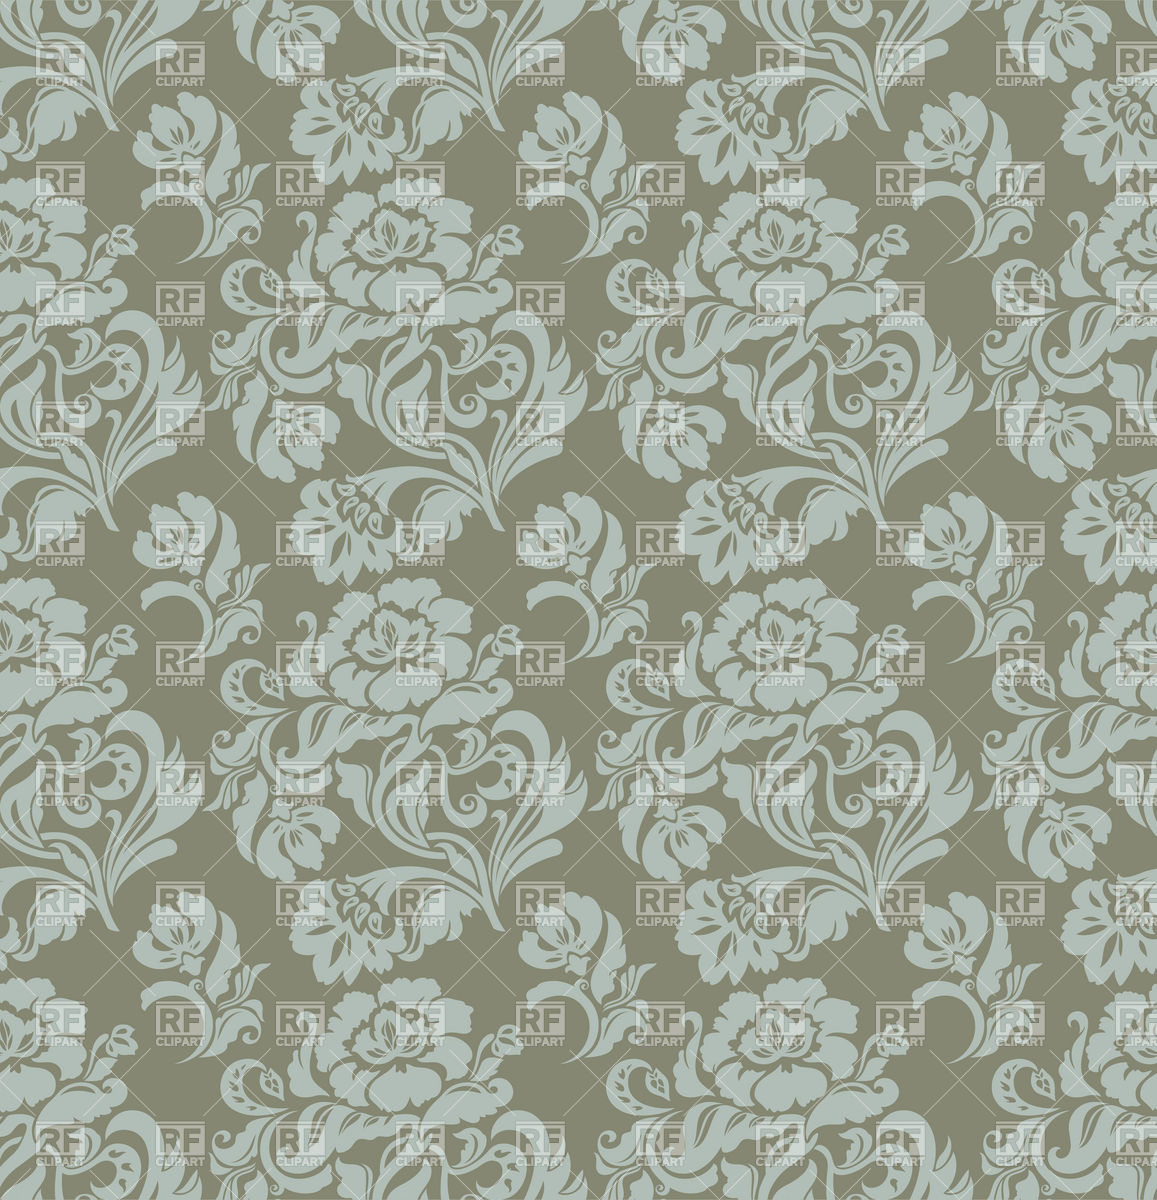 Free Download Seamless Gray Floral Victorian Wallpaper Backgrounds